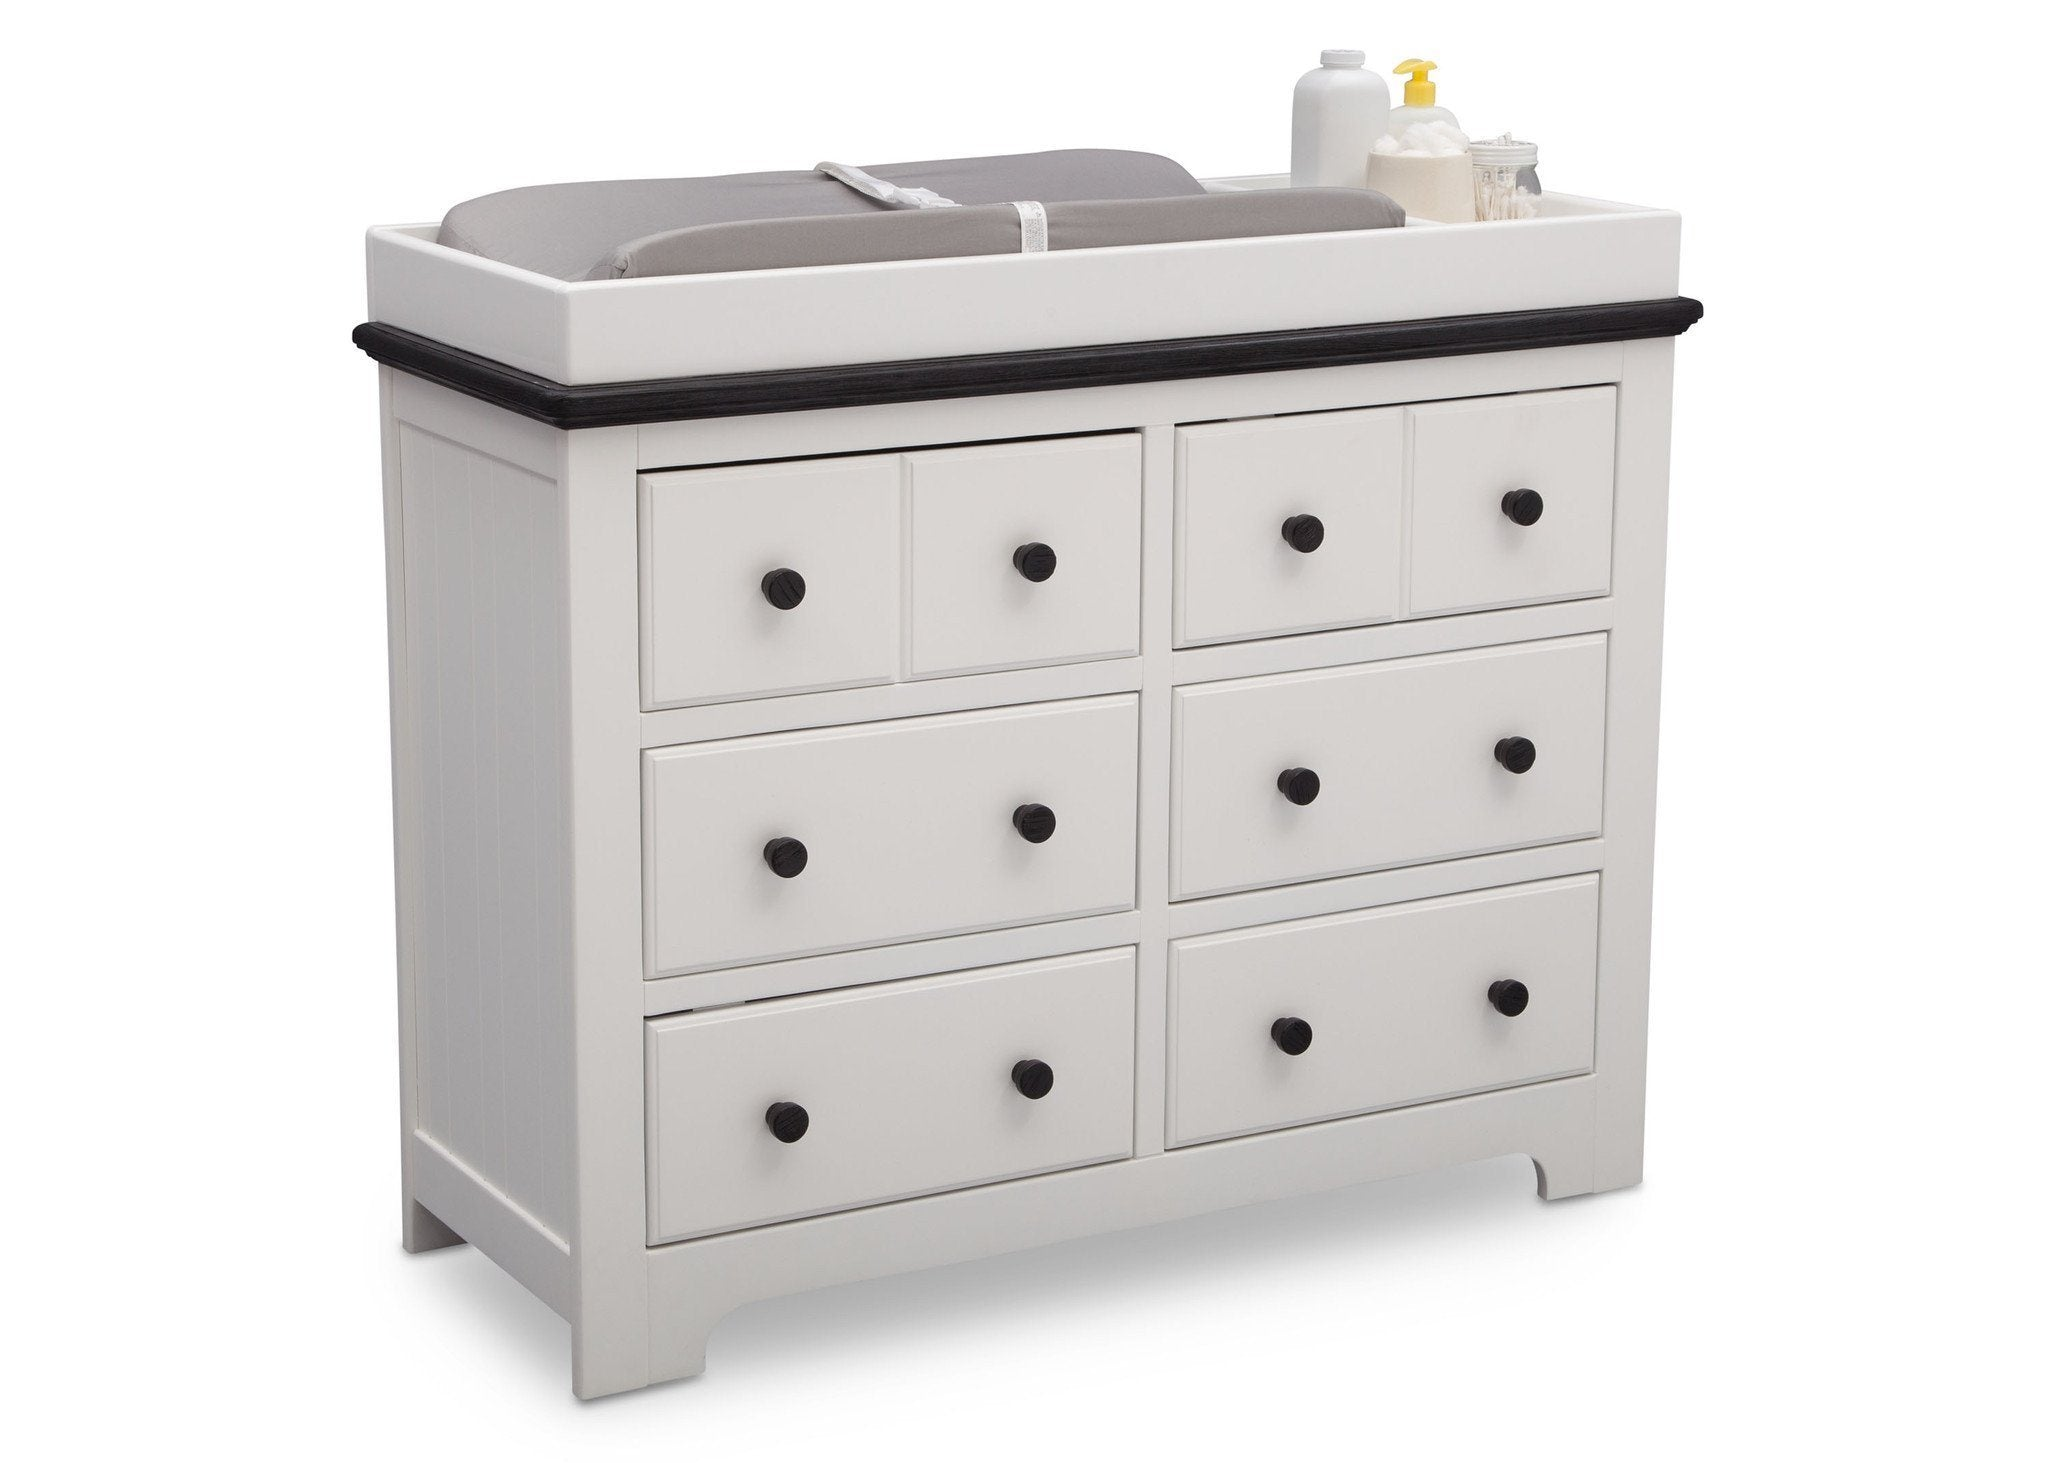 Delta Children Bianca with Rustic Ebony (135) Providence 6 Drawer Dresser, with Changing Tray a4a